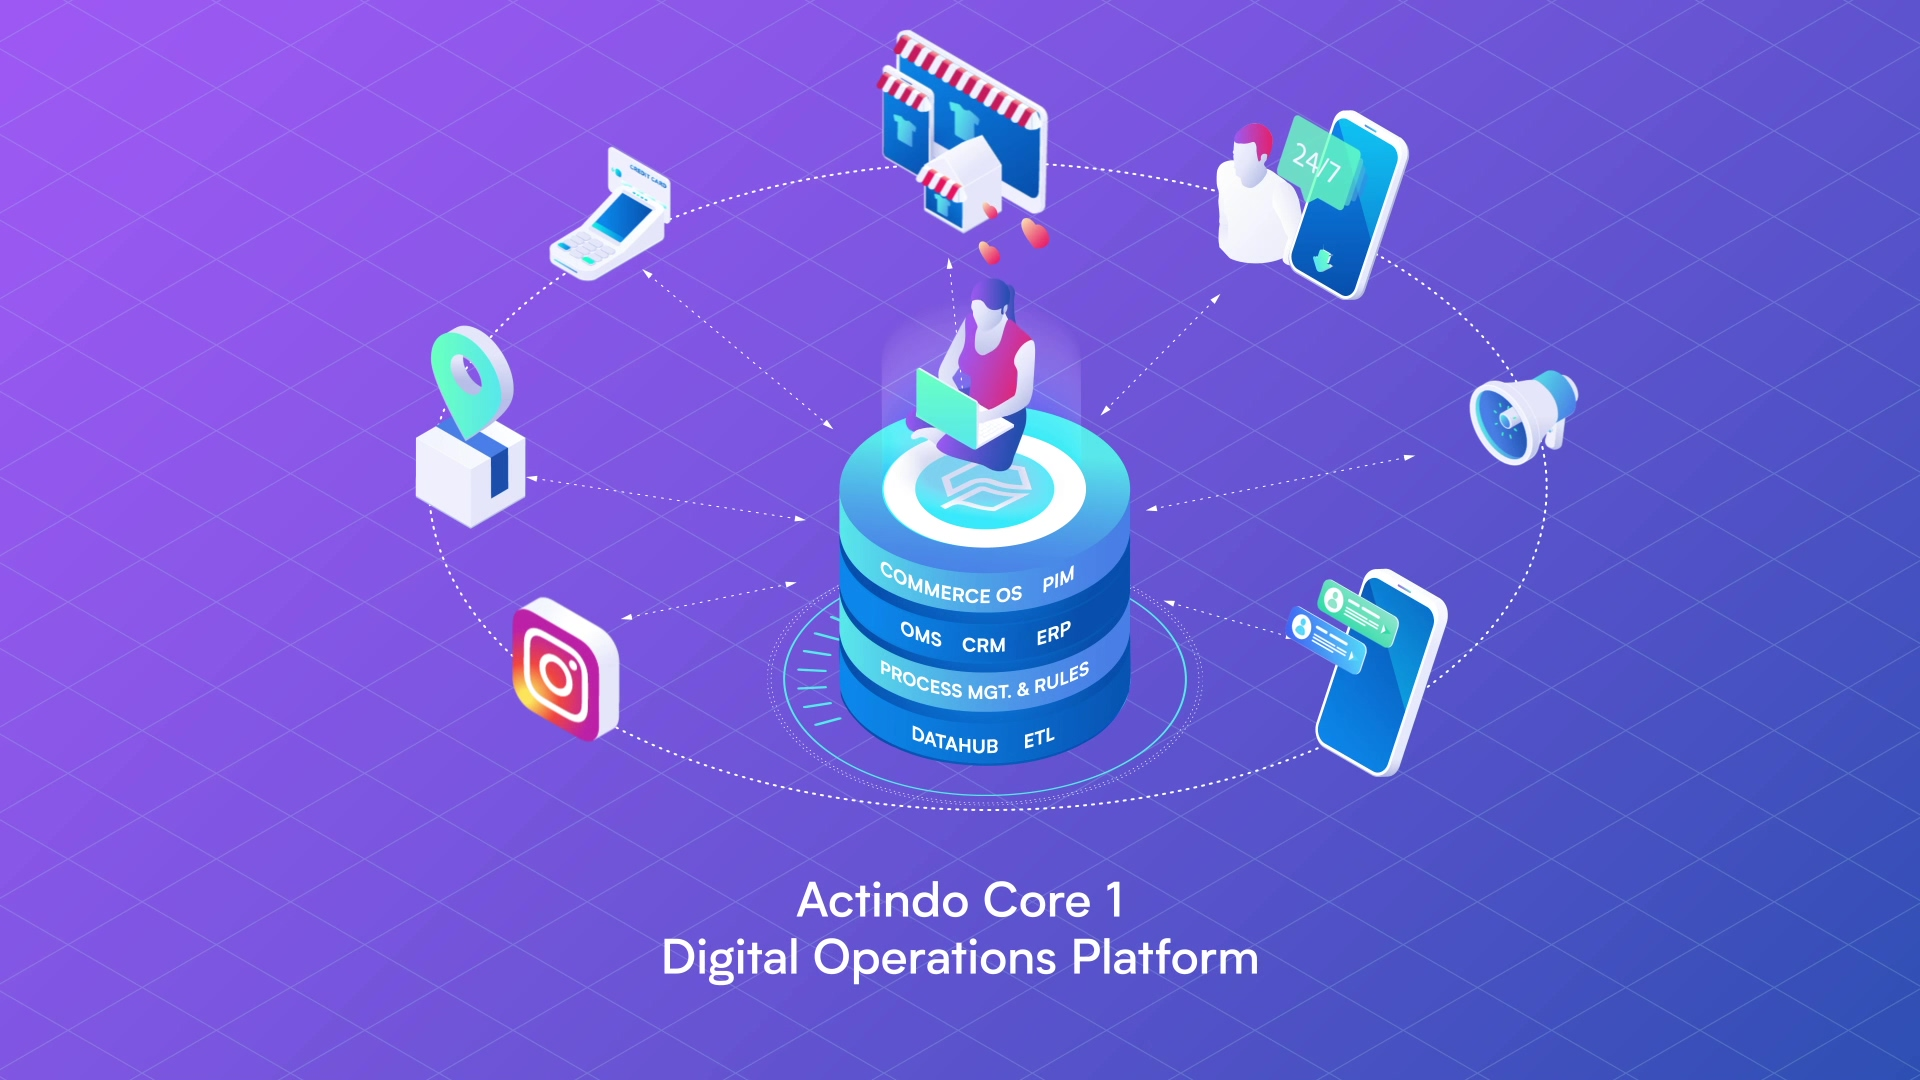 Actindo - How does it work?